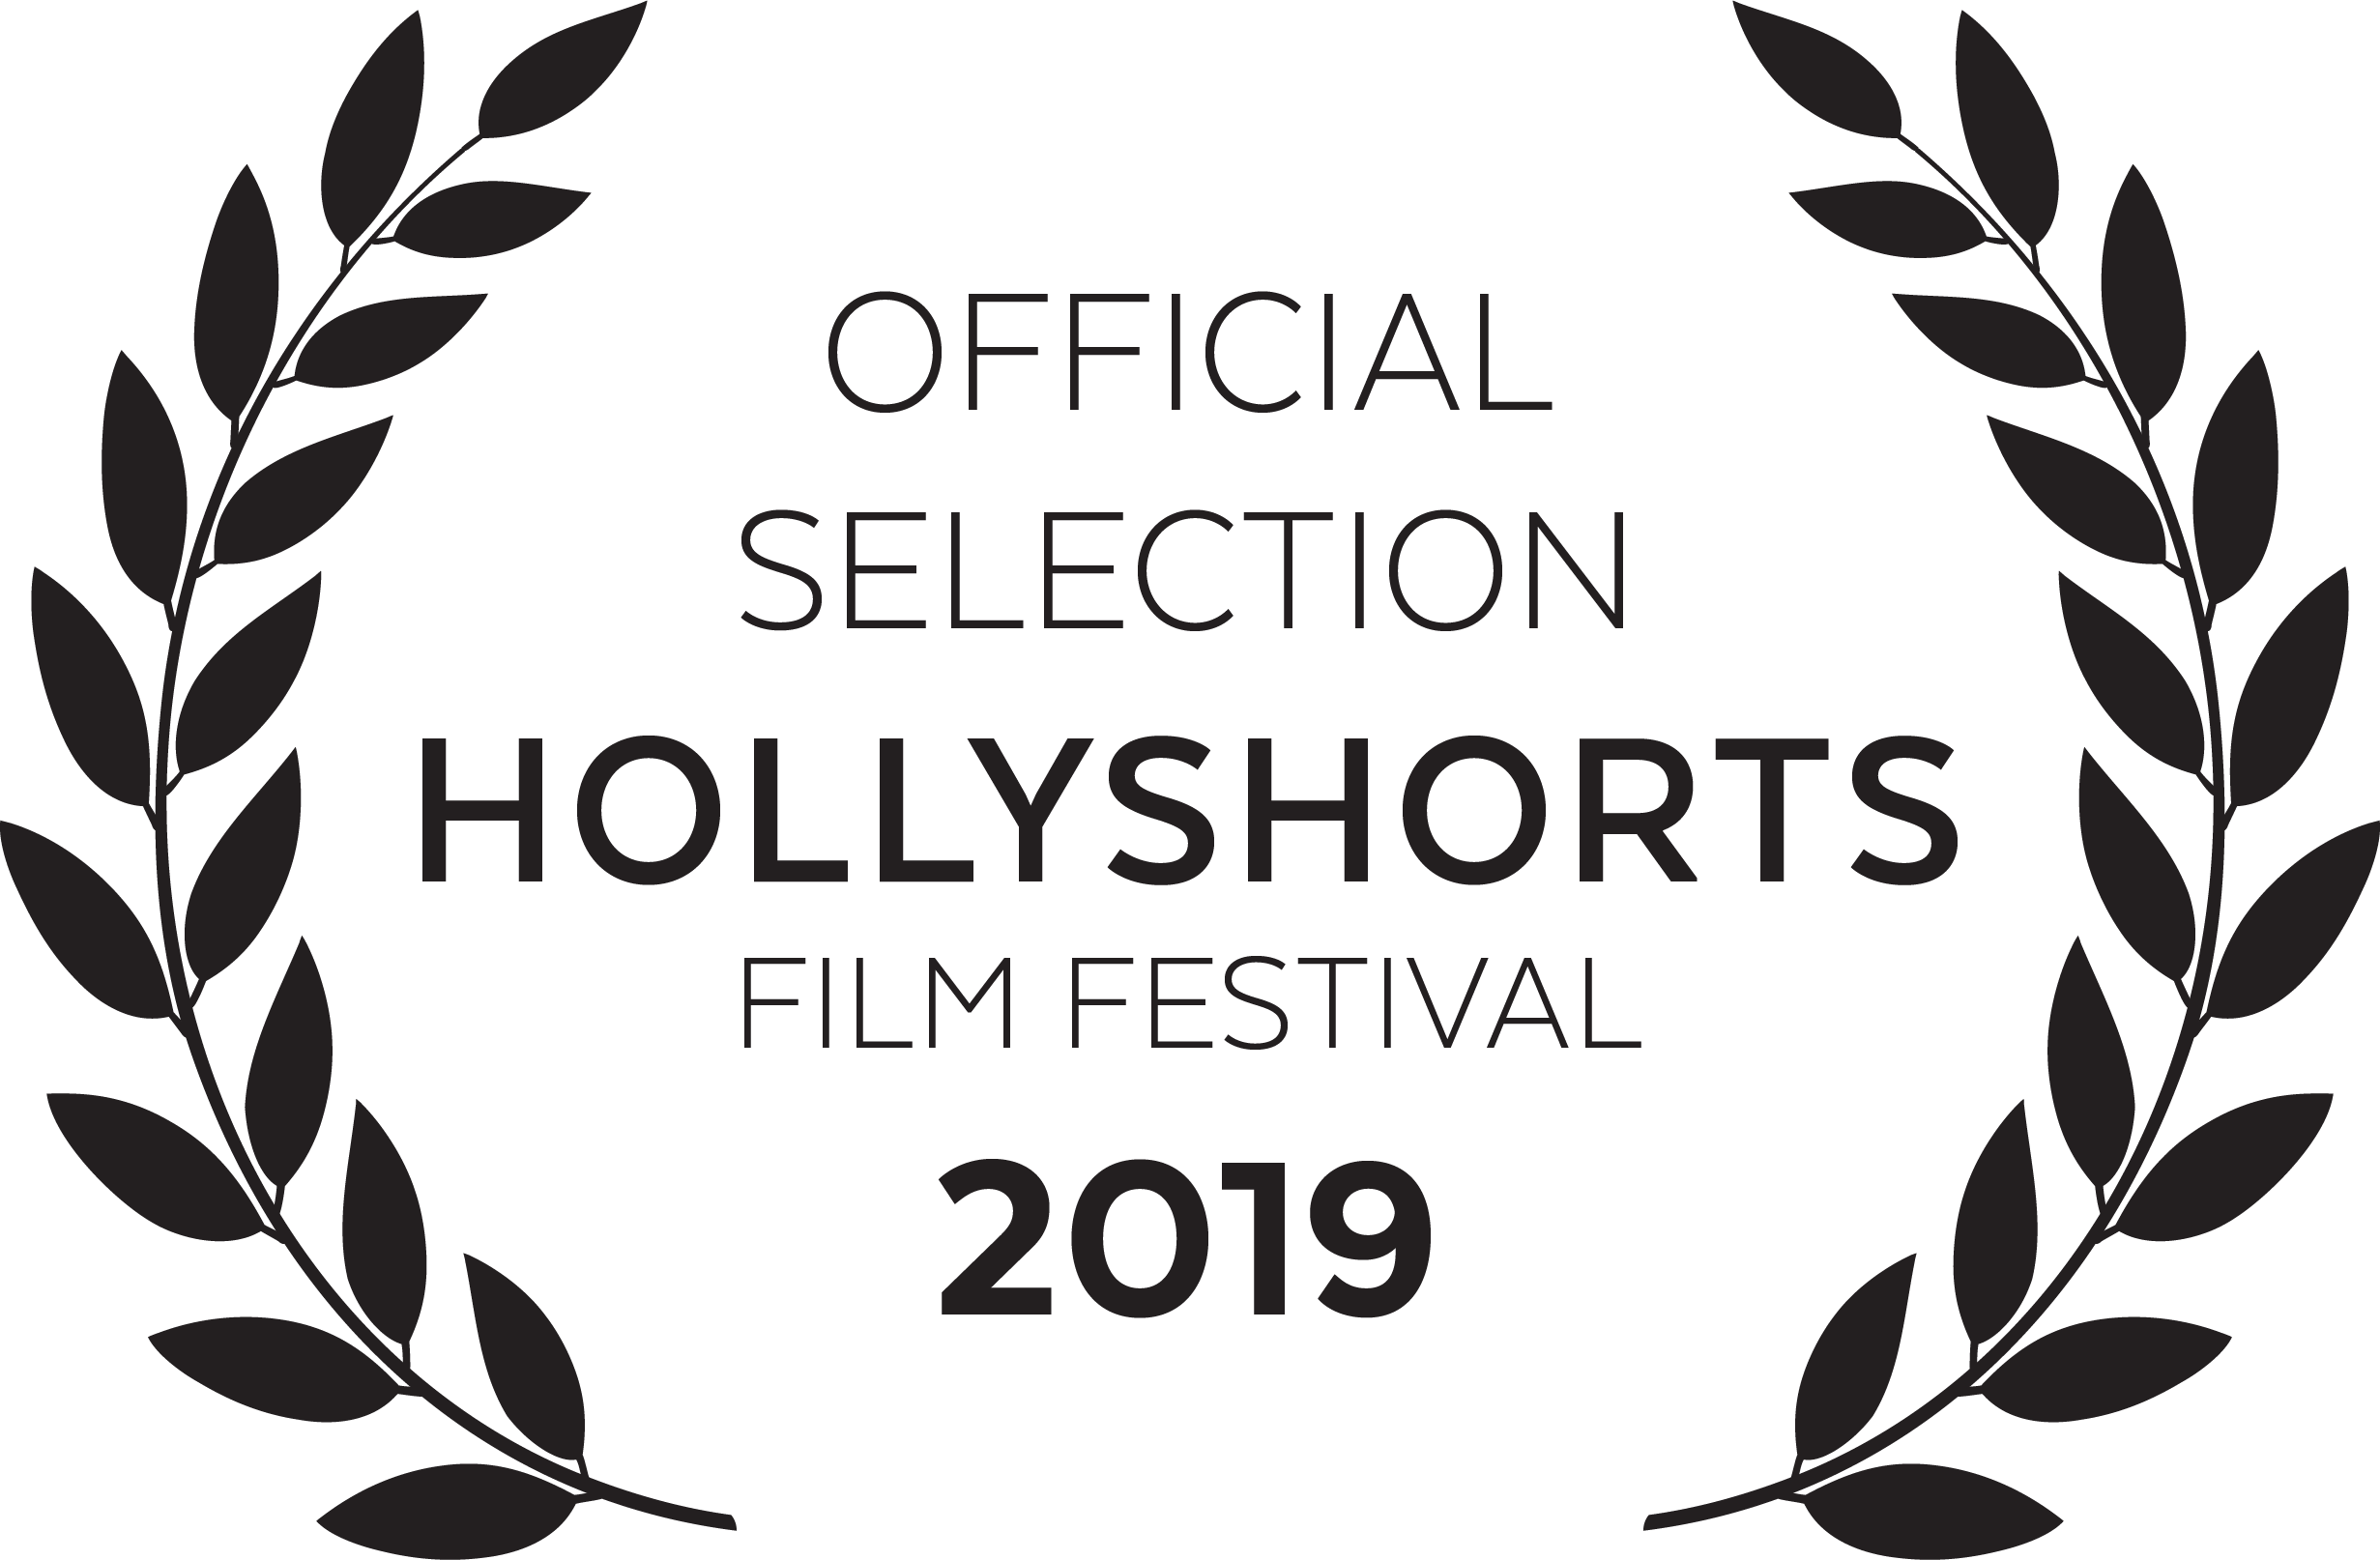 Hollyshorts Festival - Official